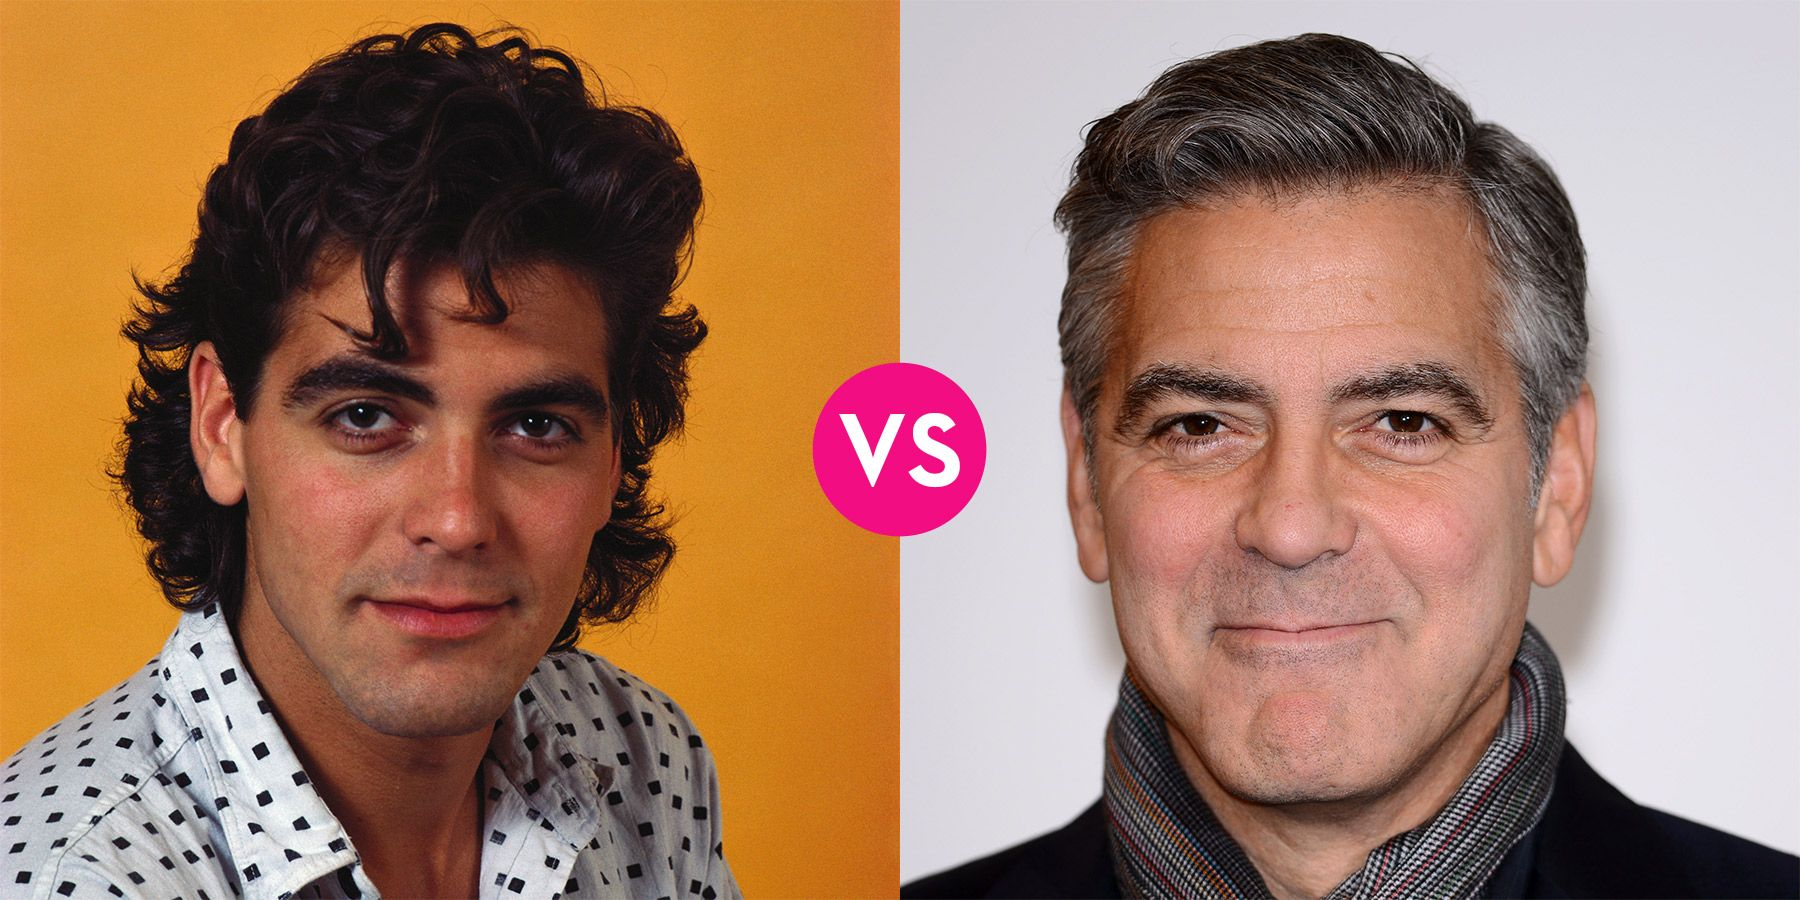 Famous Men With Long Hair Vs Short Hair Male Celebrity Haircuts